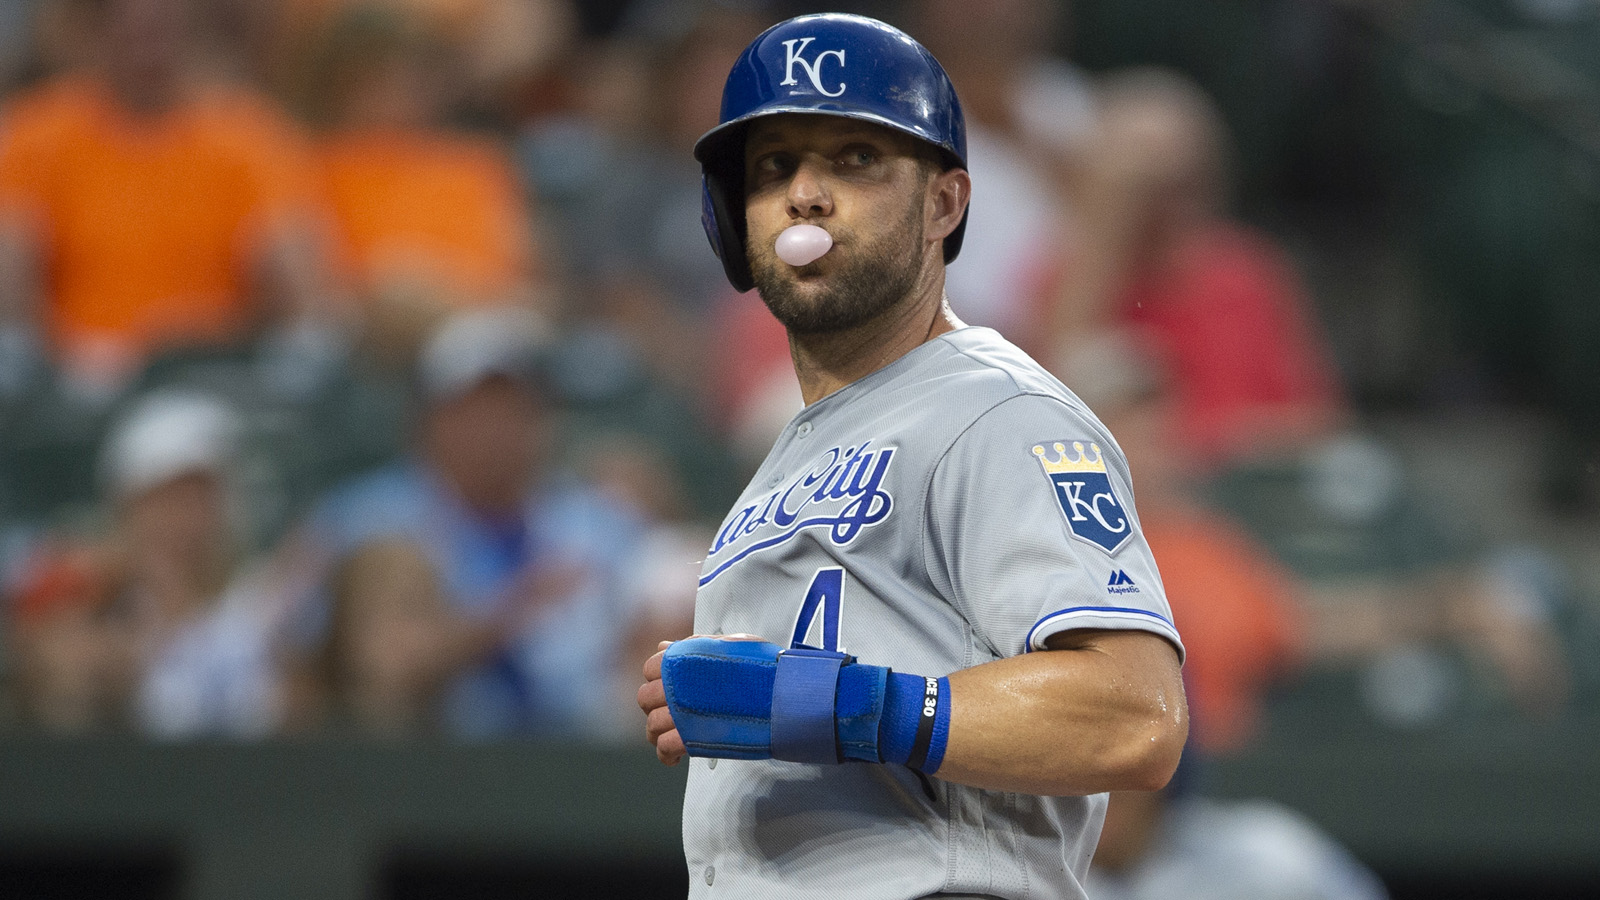 Gordon becomes free agent after exercising option, Royals declining it